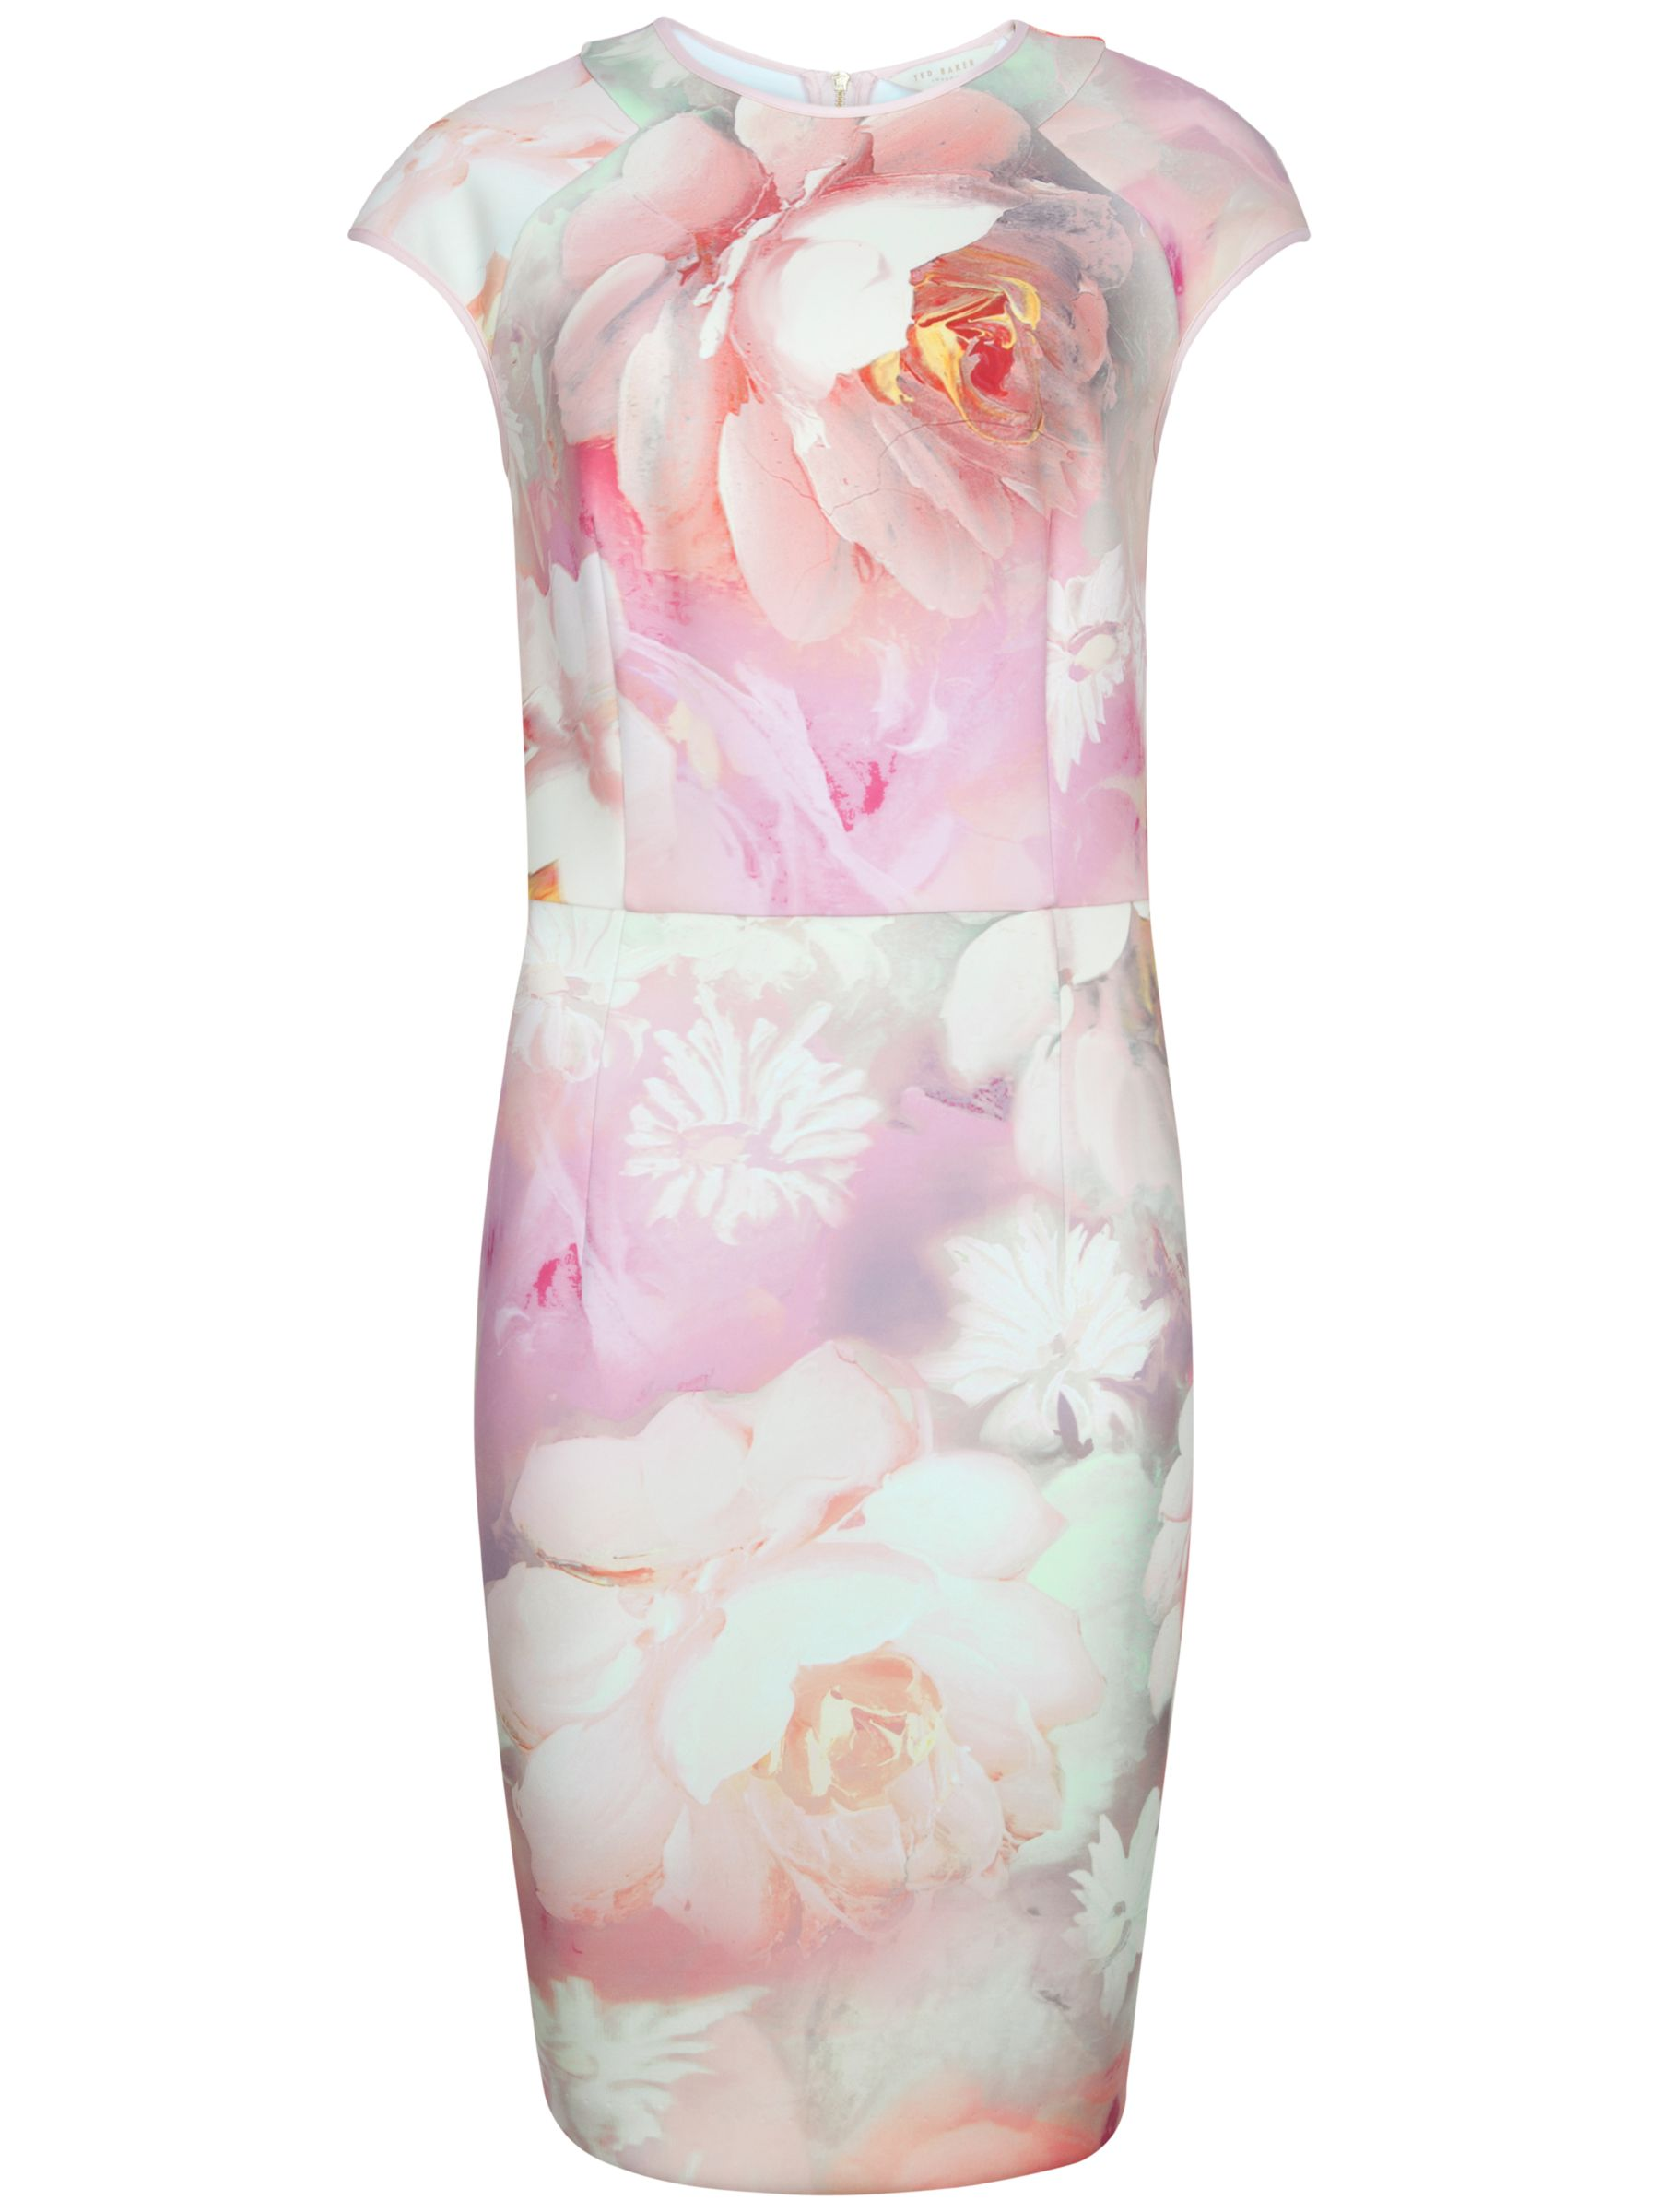 ted baker new rose fitted dress pink, ted, baker, new, rose, fitted, dress, pink, ted baker, 0|3|4|5|1|2, women, womens dresses, gifts, wedding, wedding clothing, female guests, fashion magazine, womenswear, men, brands l-z, 1929280